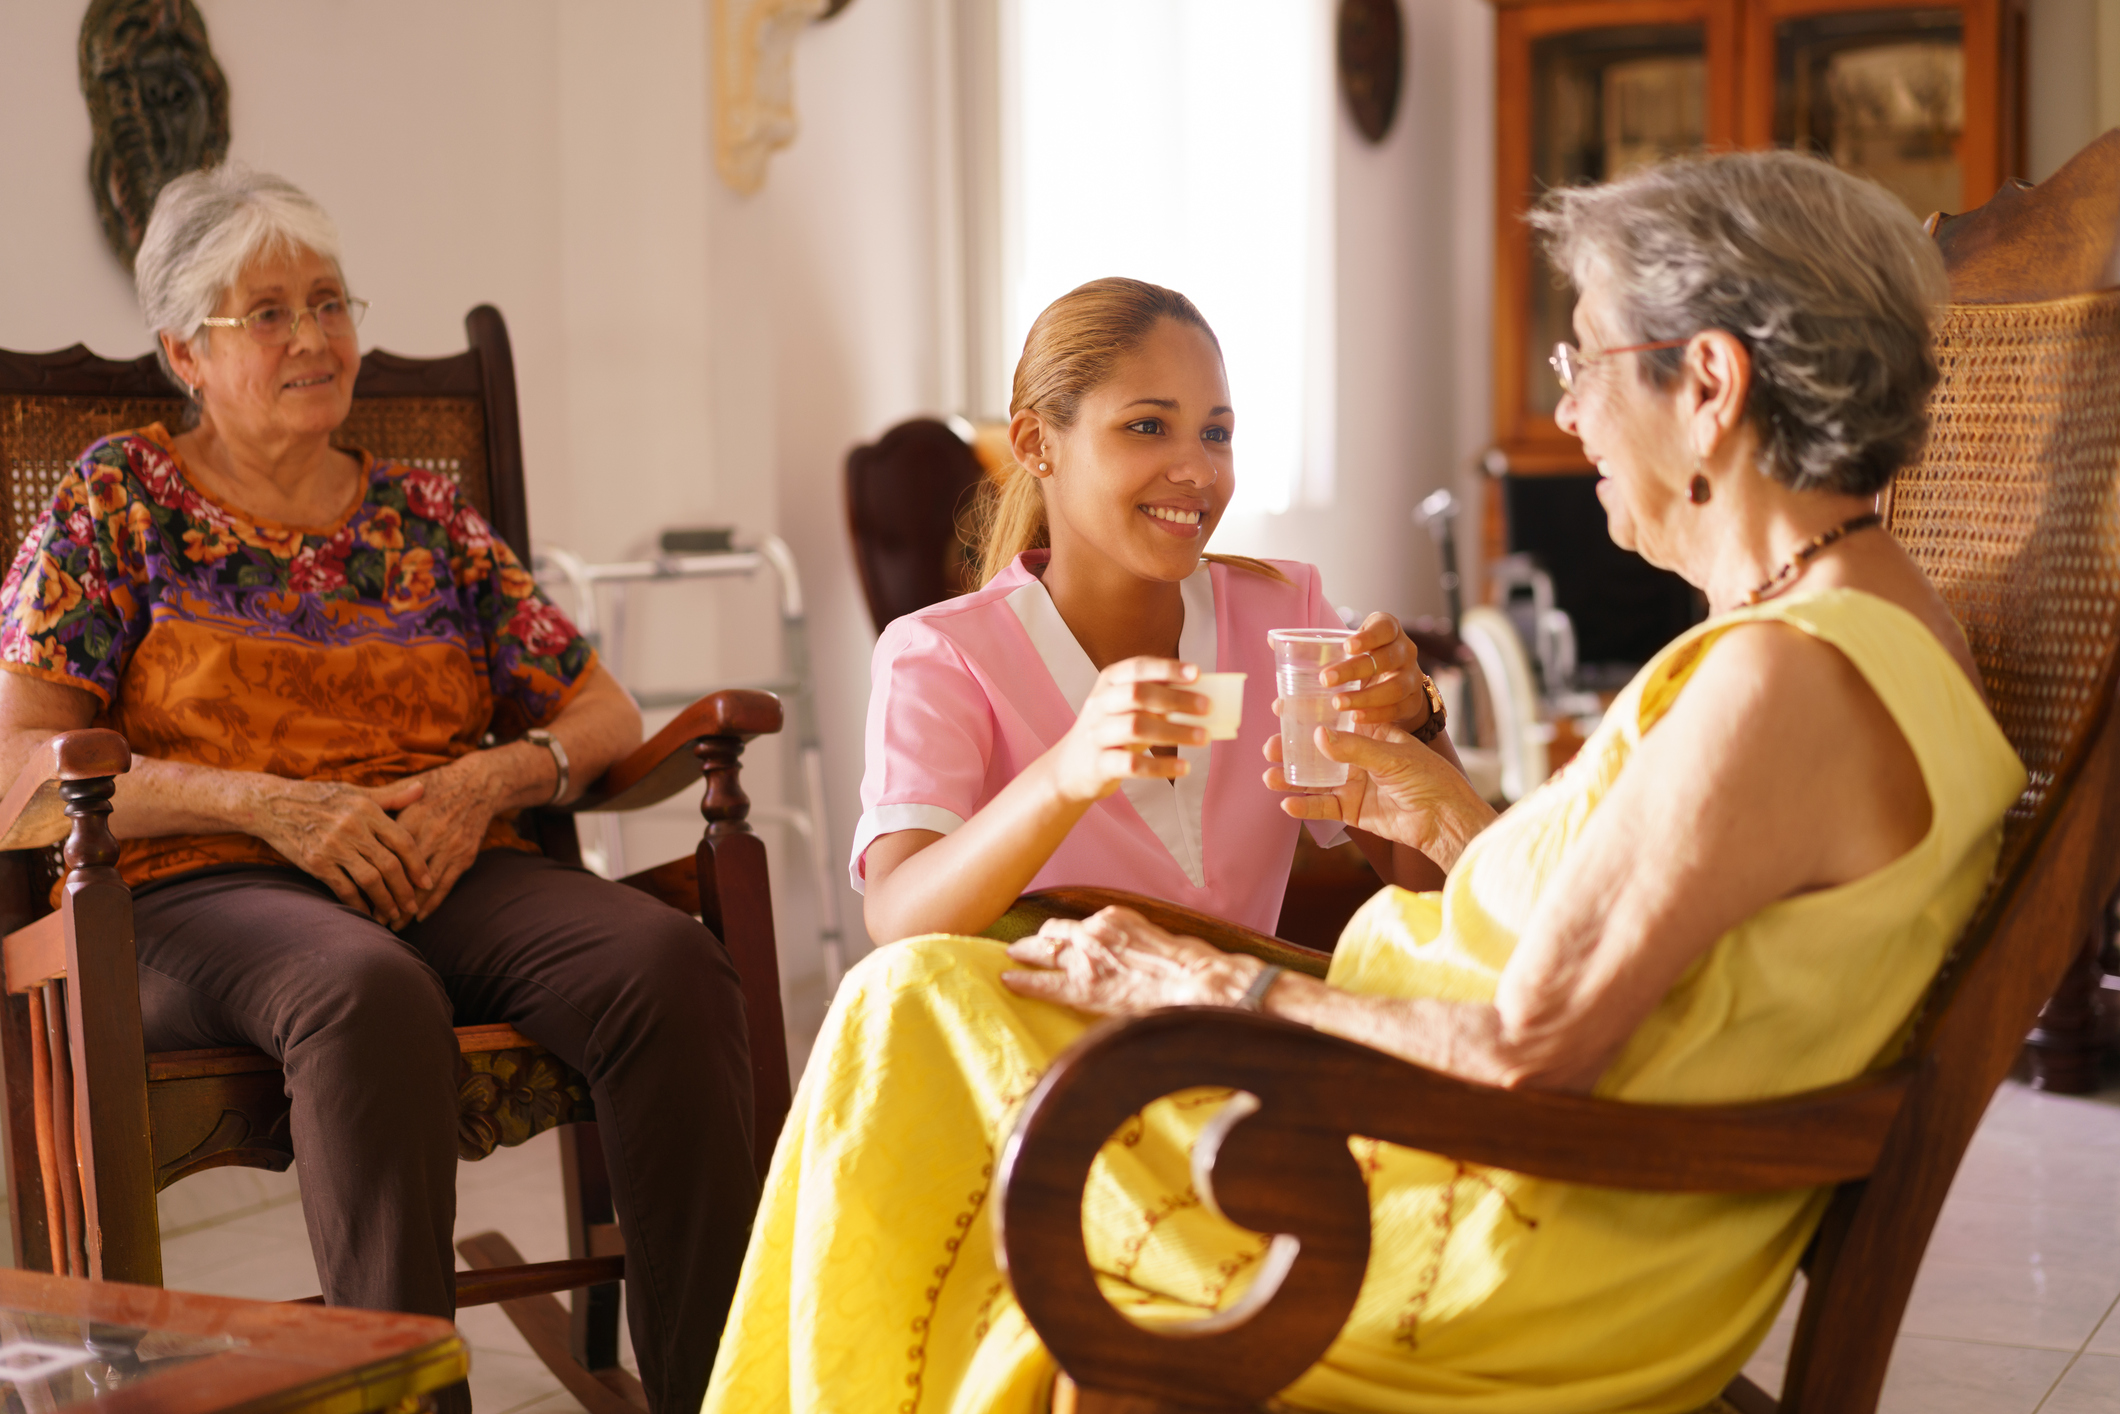 Certified nursing assistant giving woman in rocking chair pills and water cup while woman in rocking chair looks on